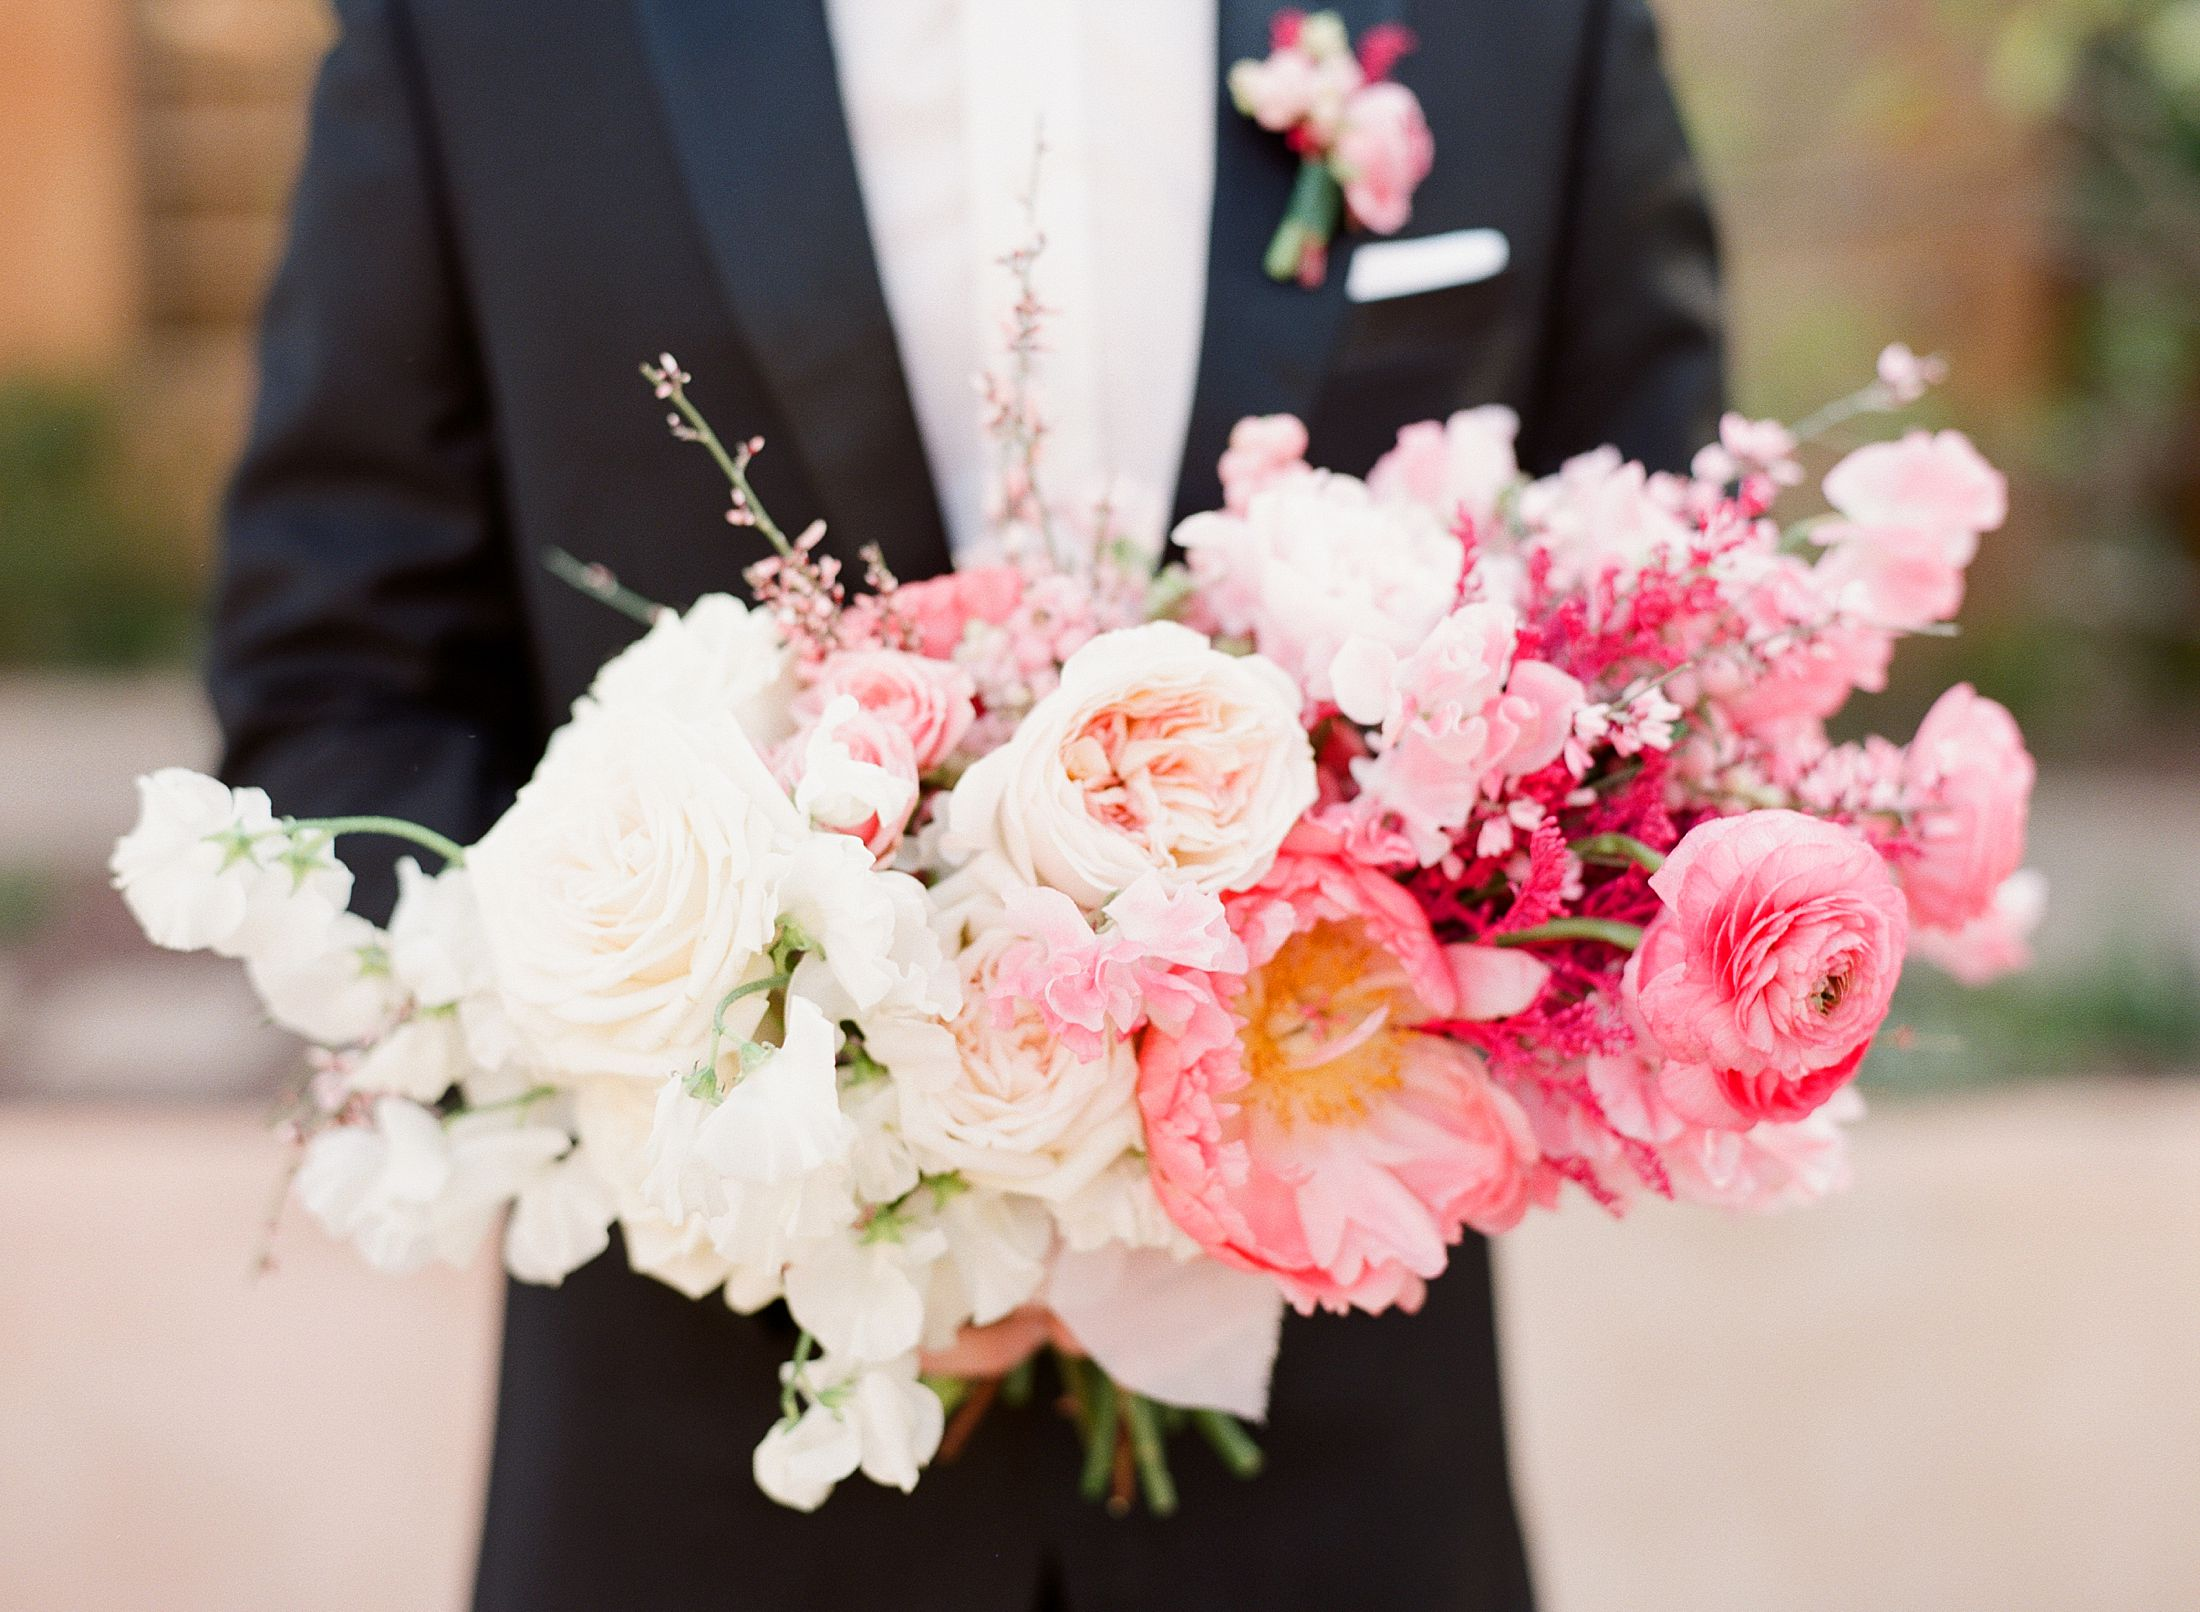 Pink Ombre Wedding Inspiration on Style Me Pretty - Royal Palms Wedding - Scottsdale Wedding - Ashley Baumgartner - Bloom and Blueprint - Wedding Puppies - Bulldog Puppies_0011.jpg